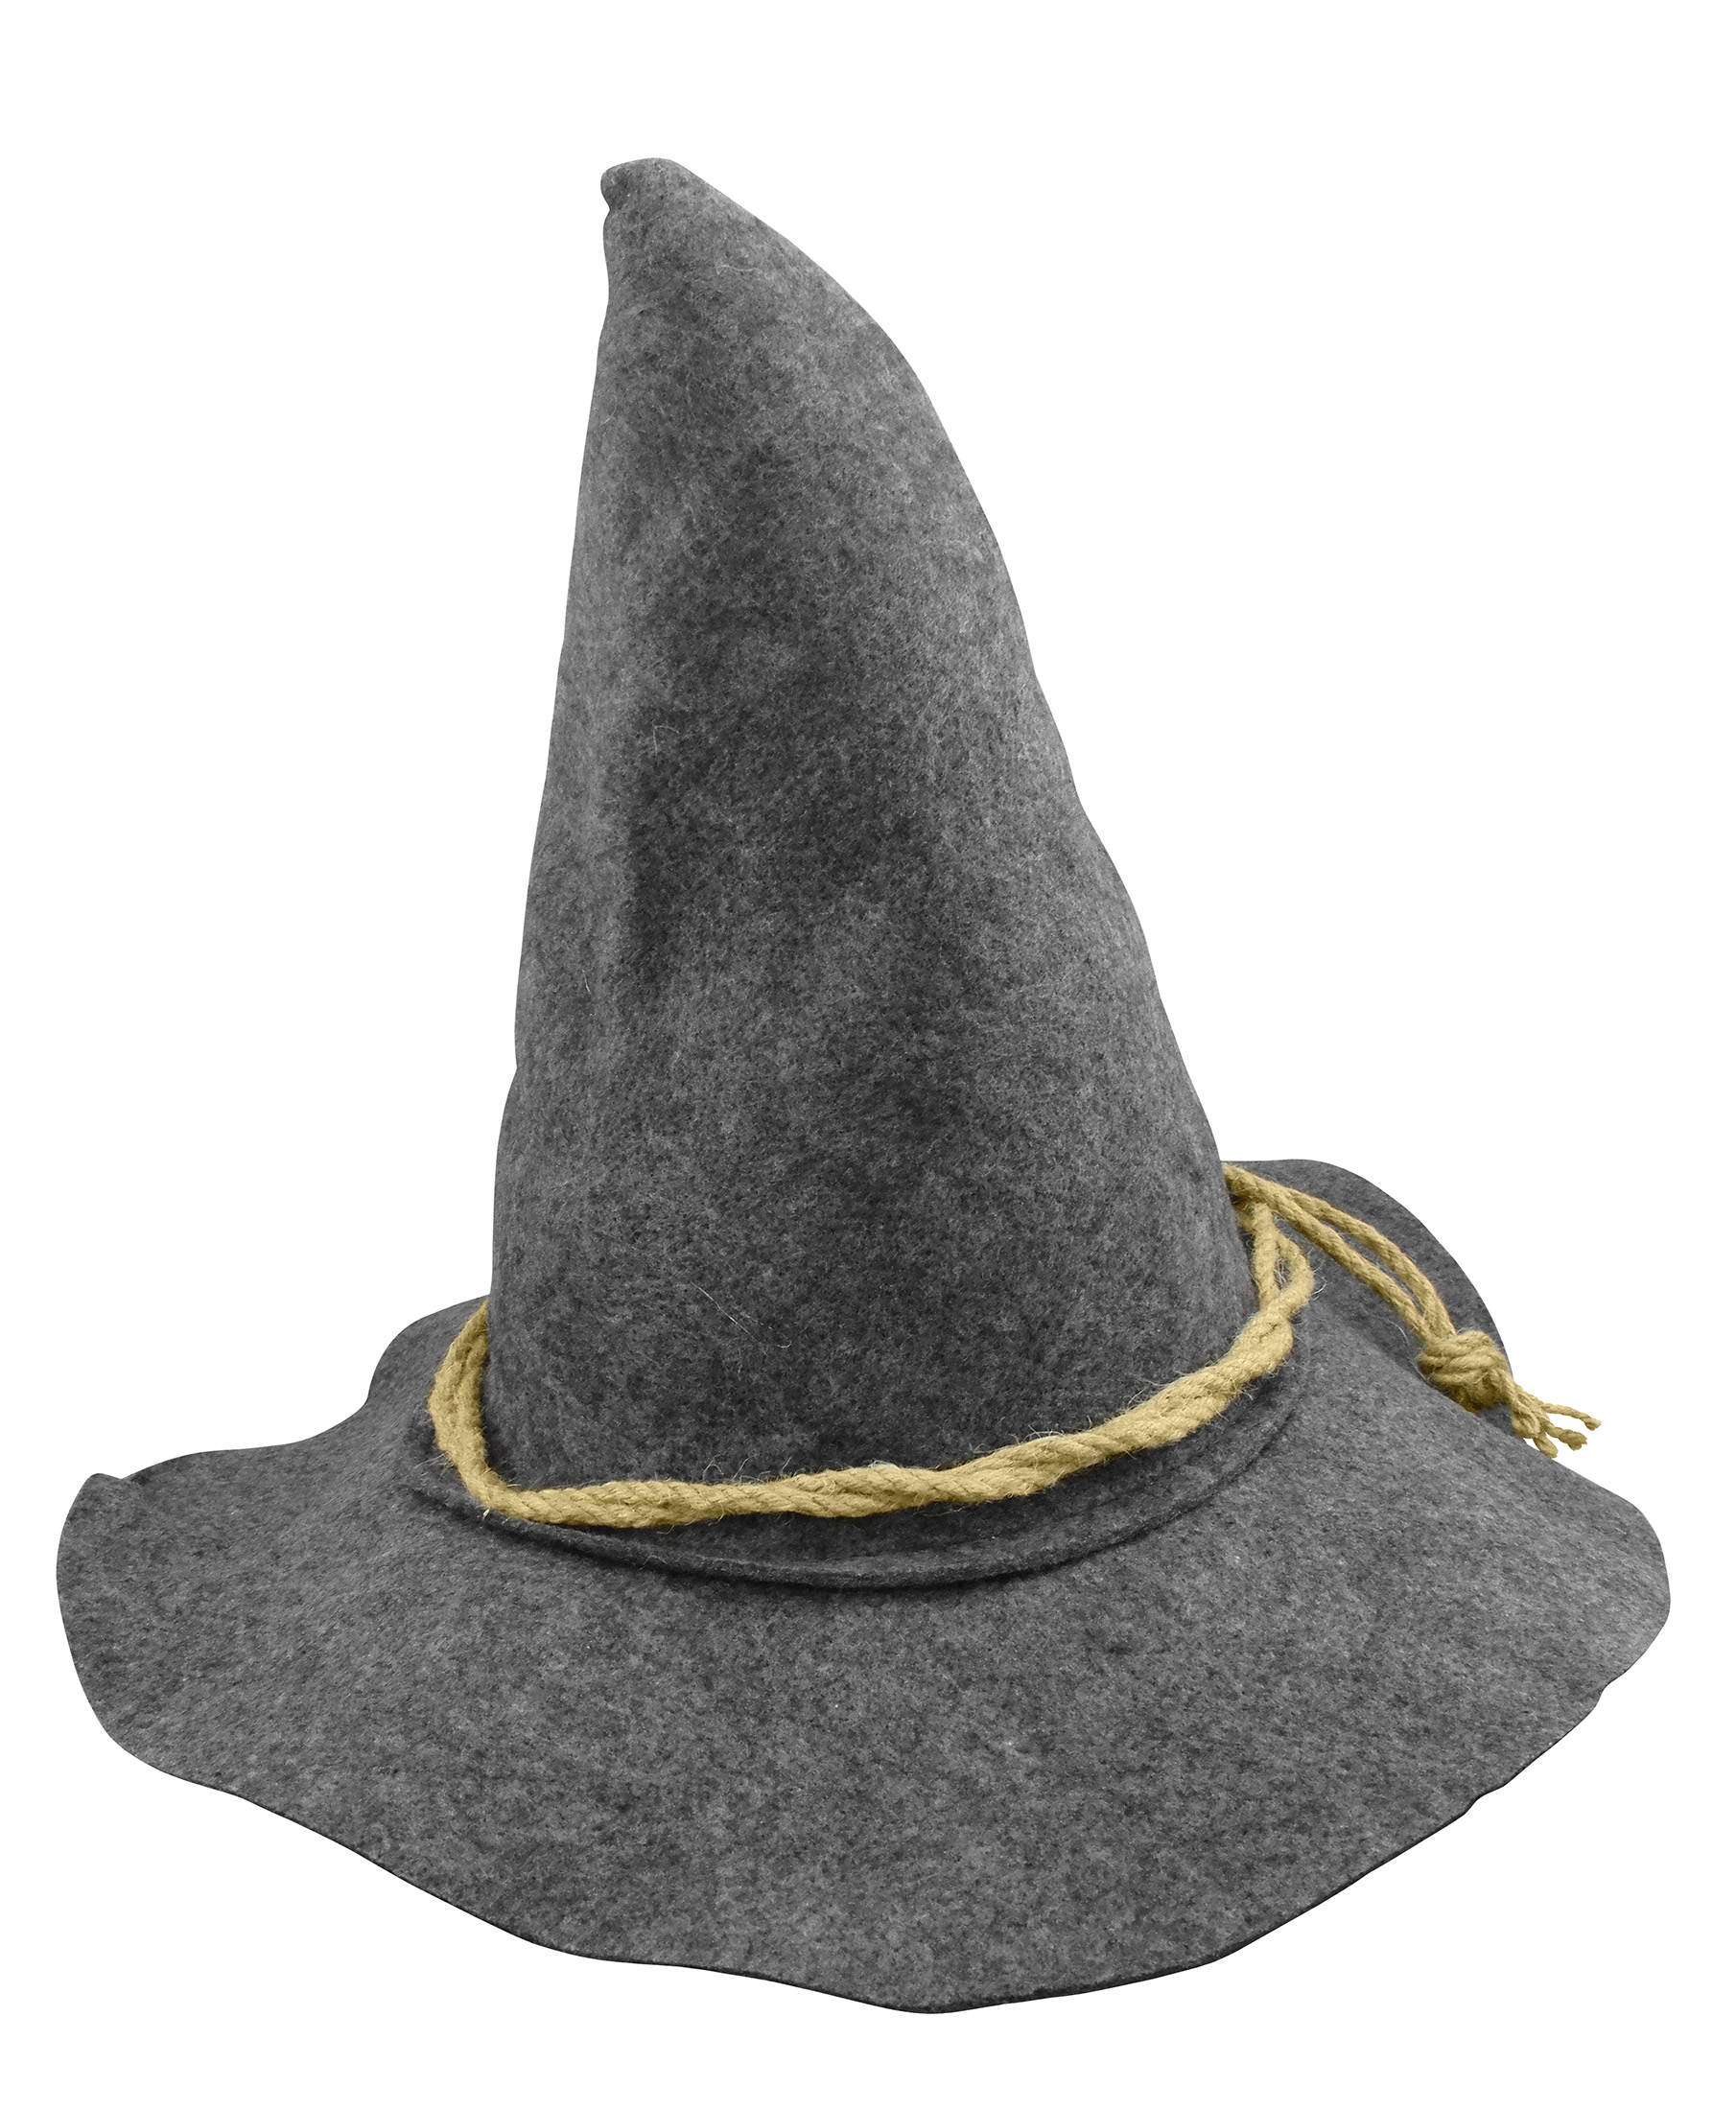 thumbnail 17 - Adult Scarecrow Hat Deluxe Felt Oktoberfest Wizard Witch Hillbilly Hat Costume